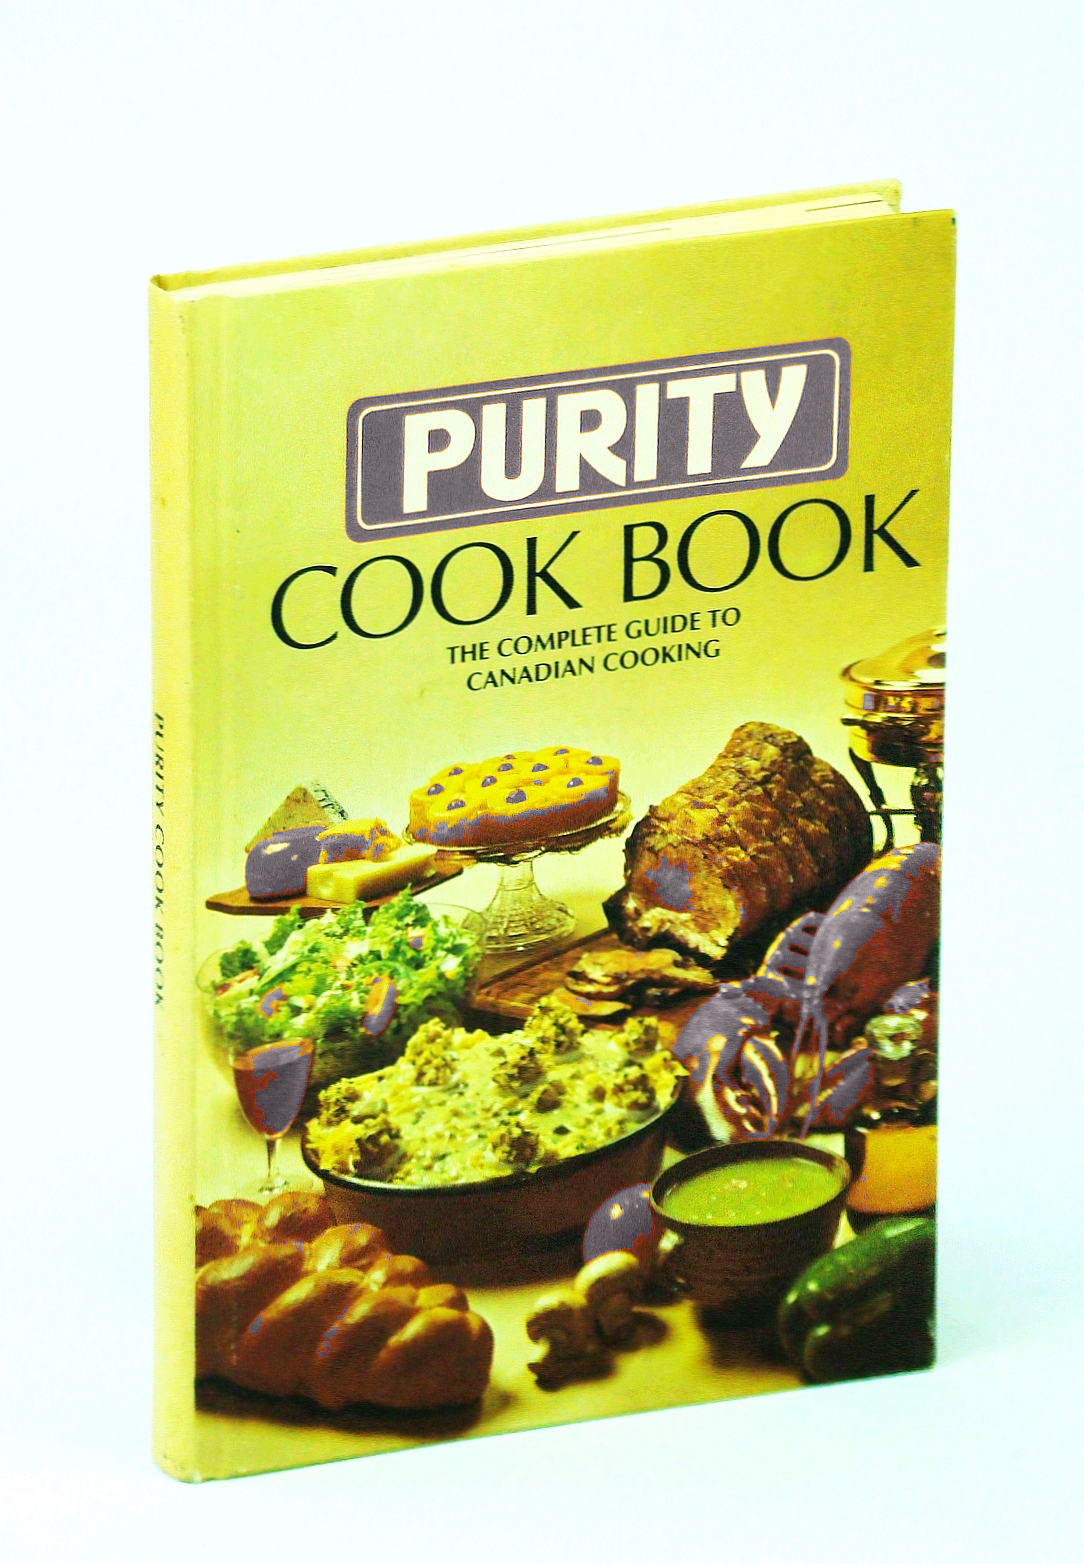 Image for Purity Cook Book [Cookbook] - The Complete Guide to Canadian Cooking